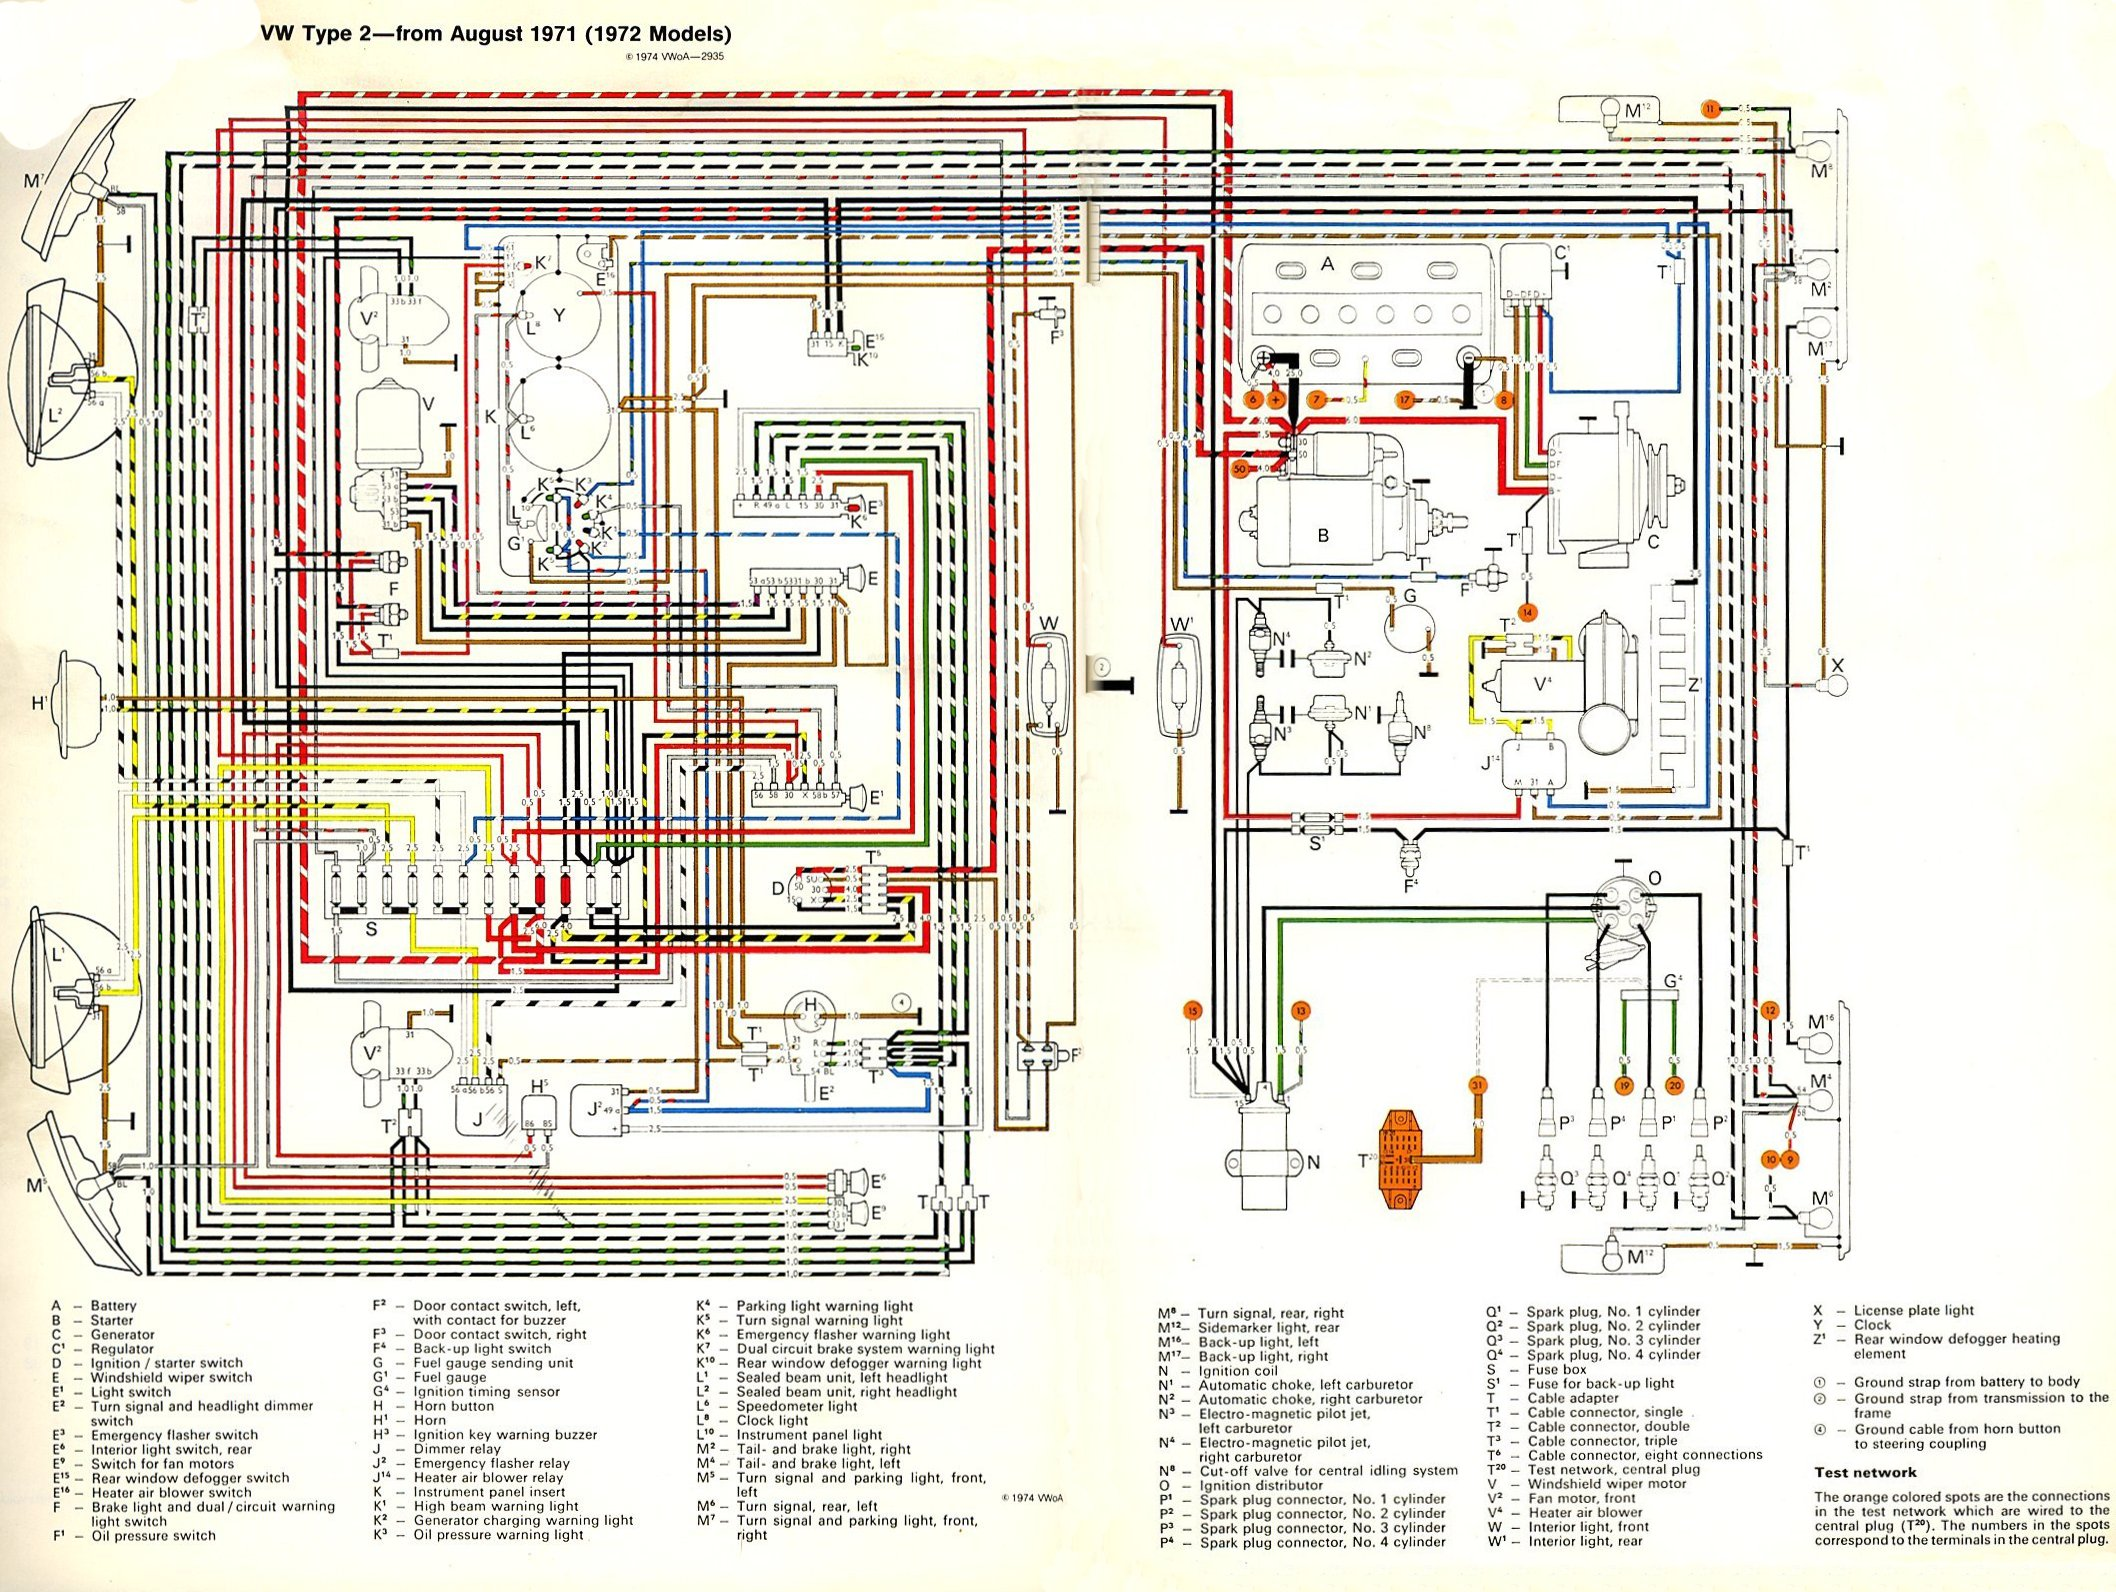 bus_1972_wiring 1967 vw wiring diagrams wiring diagram shrutiradio 74 vw bus wiring diagram at nearapp.co